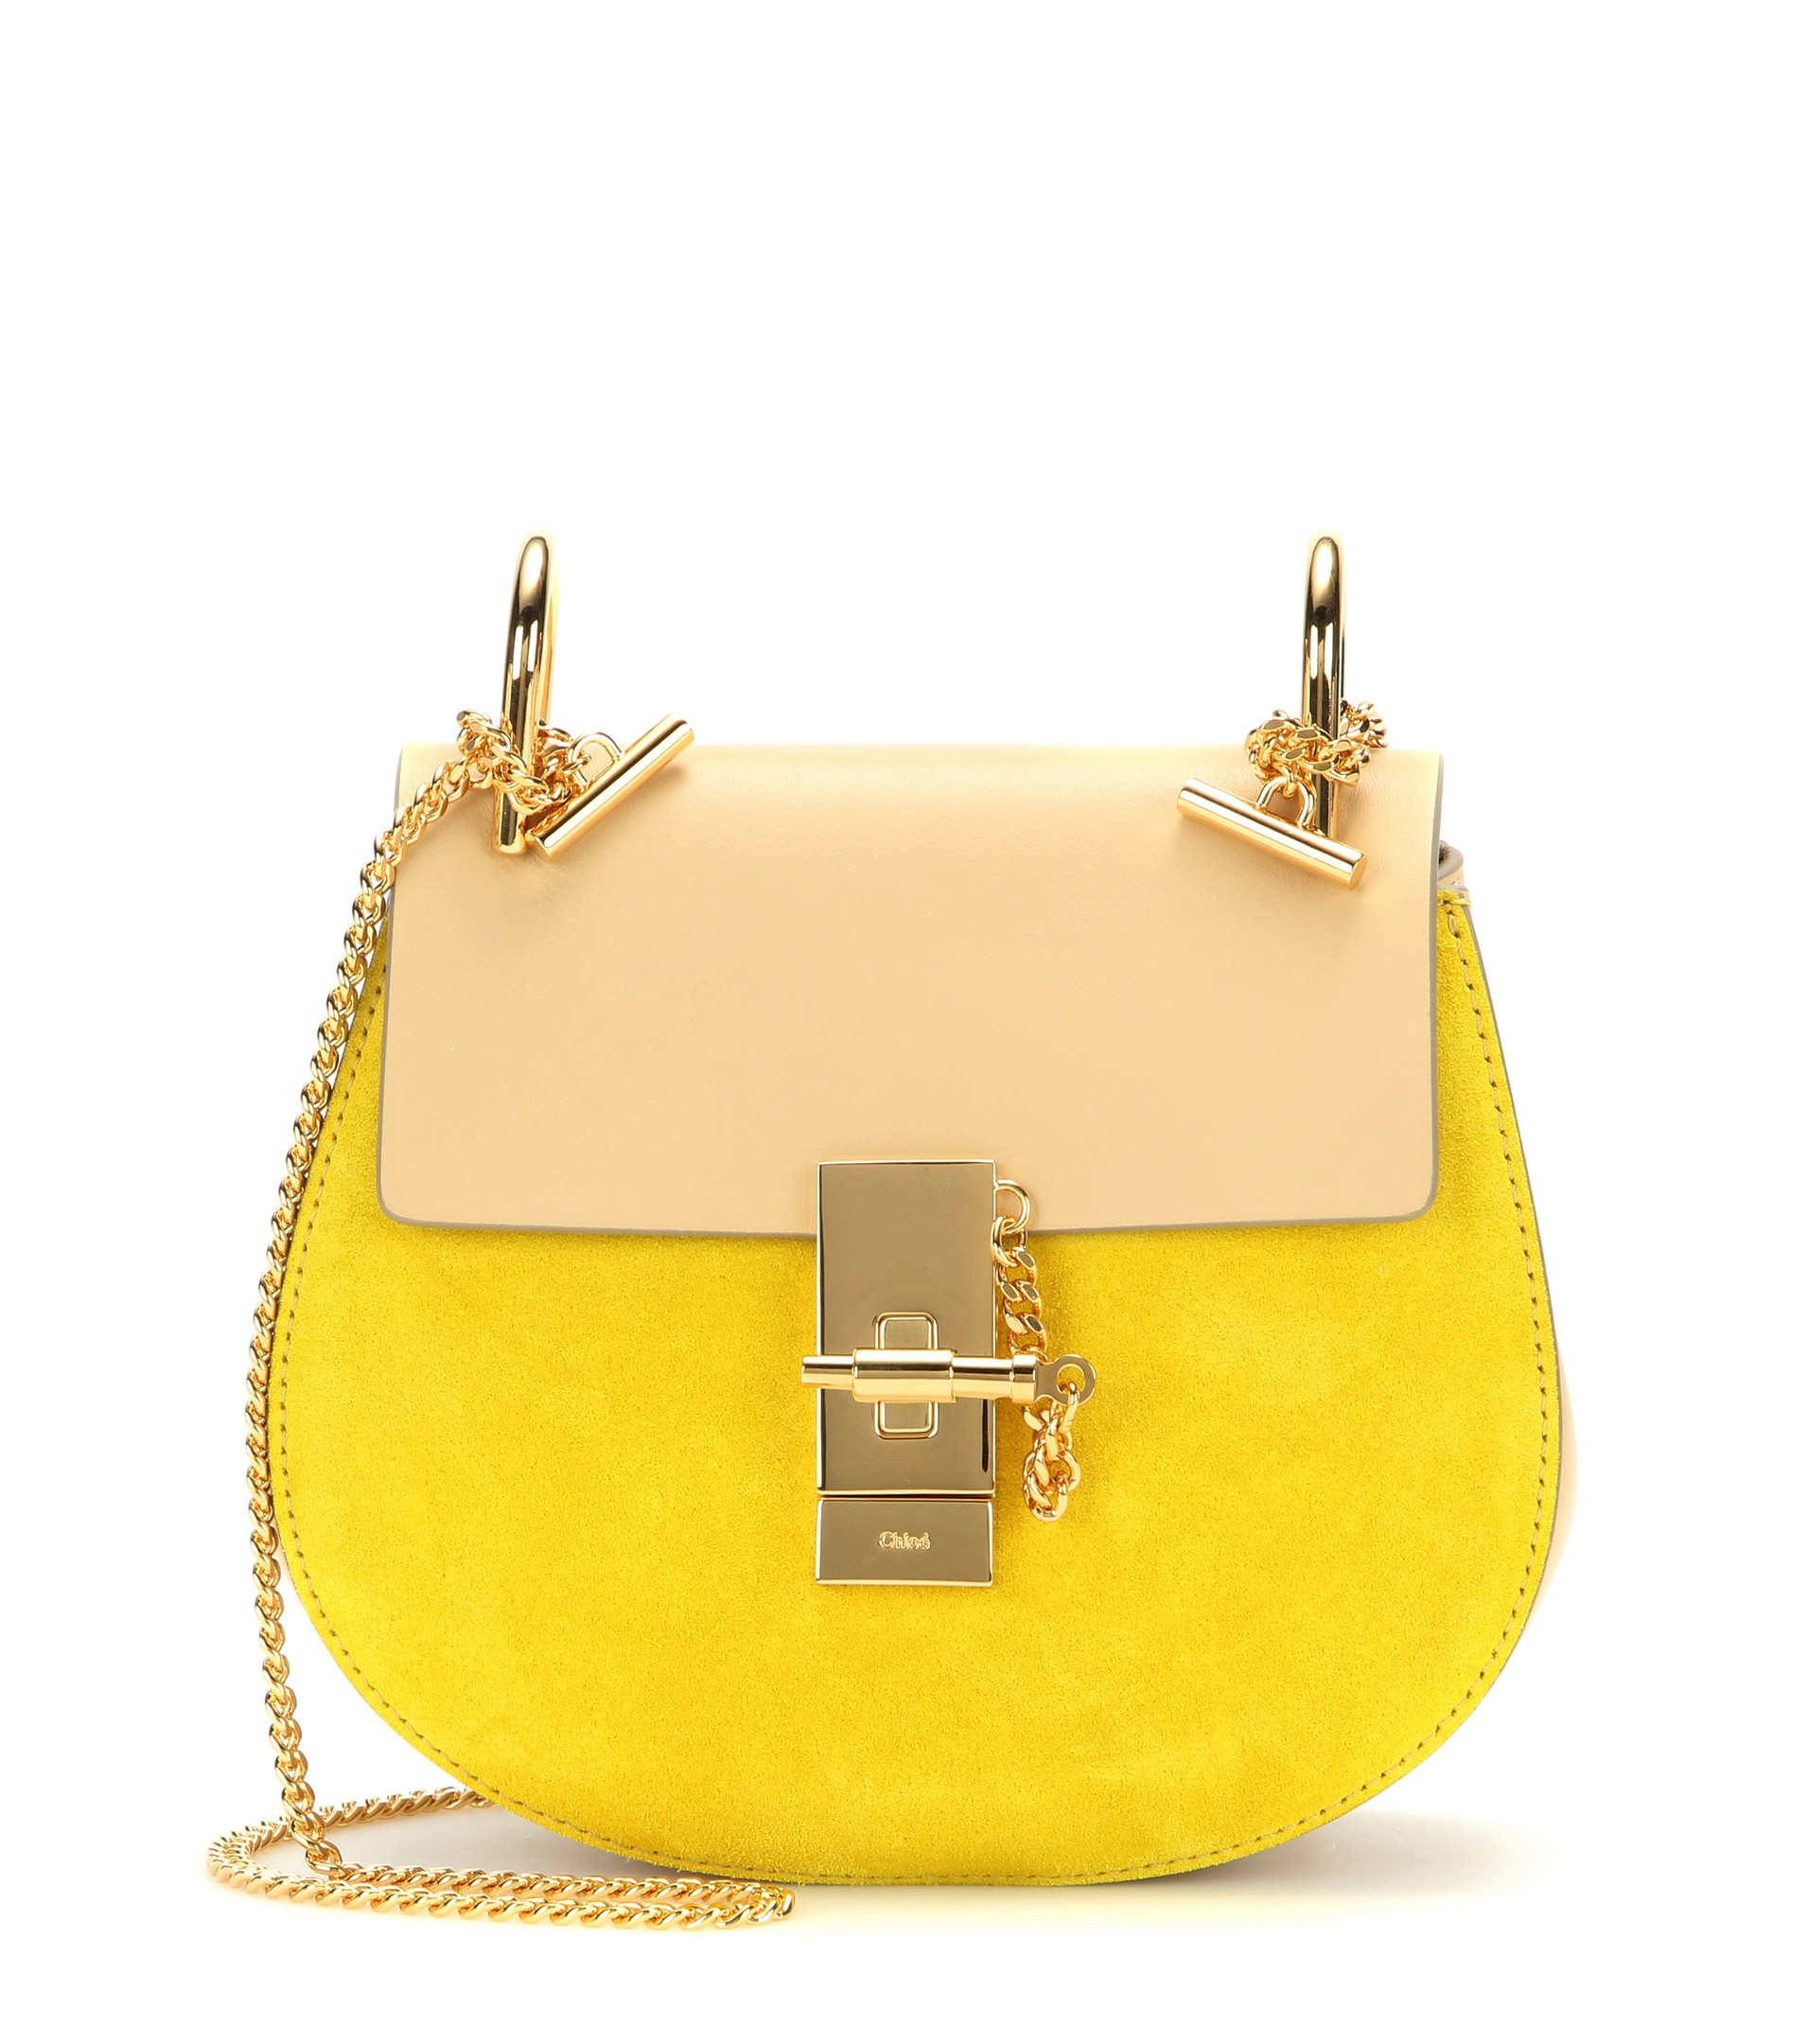 chloe red bags - Chlo�� Drew Leather And Suede Shoulder Bag in Yellow | Lyst